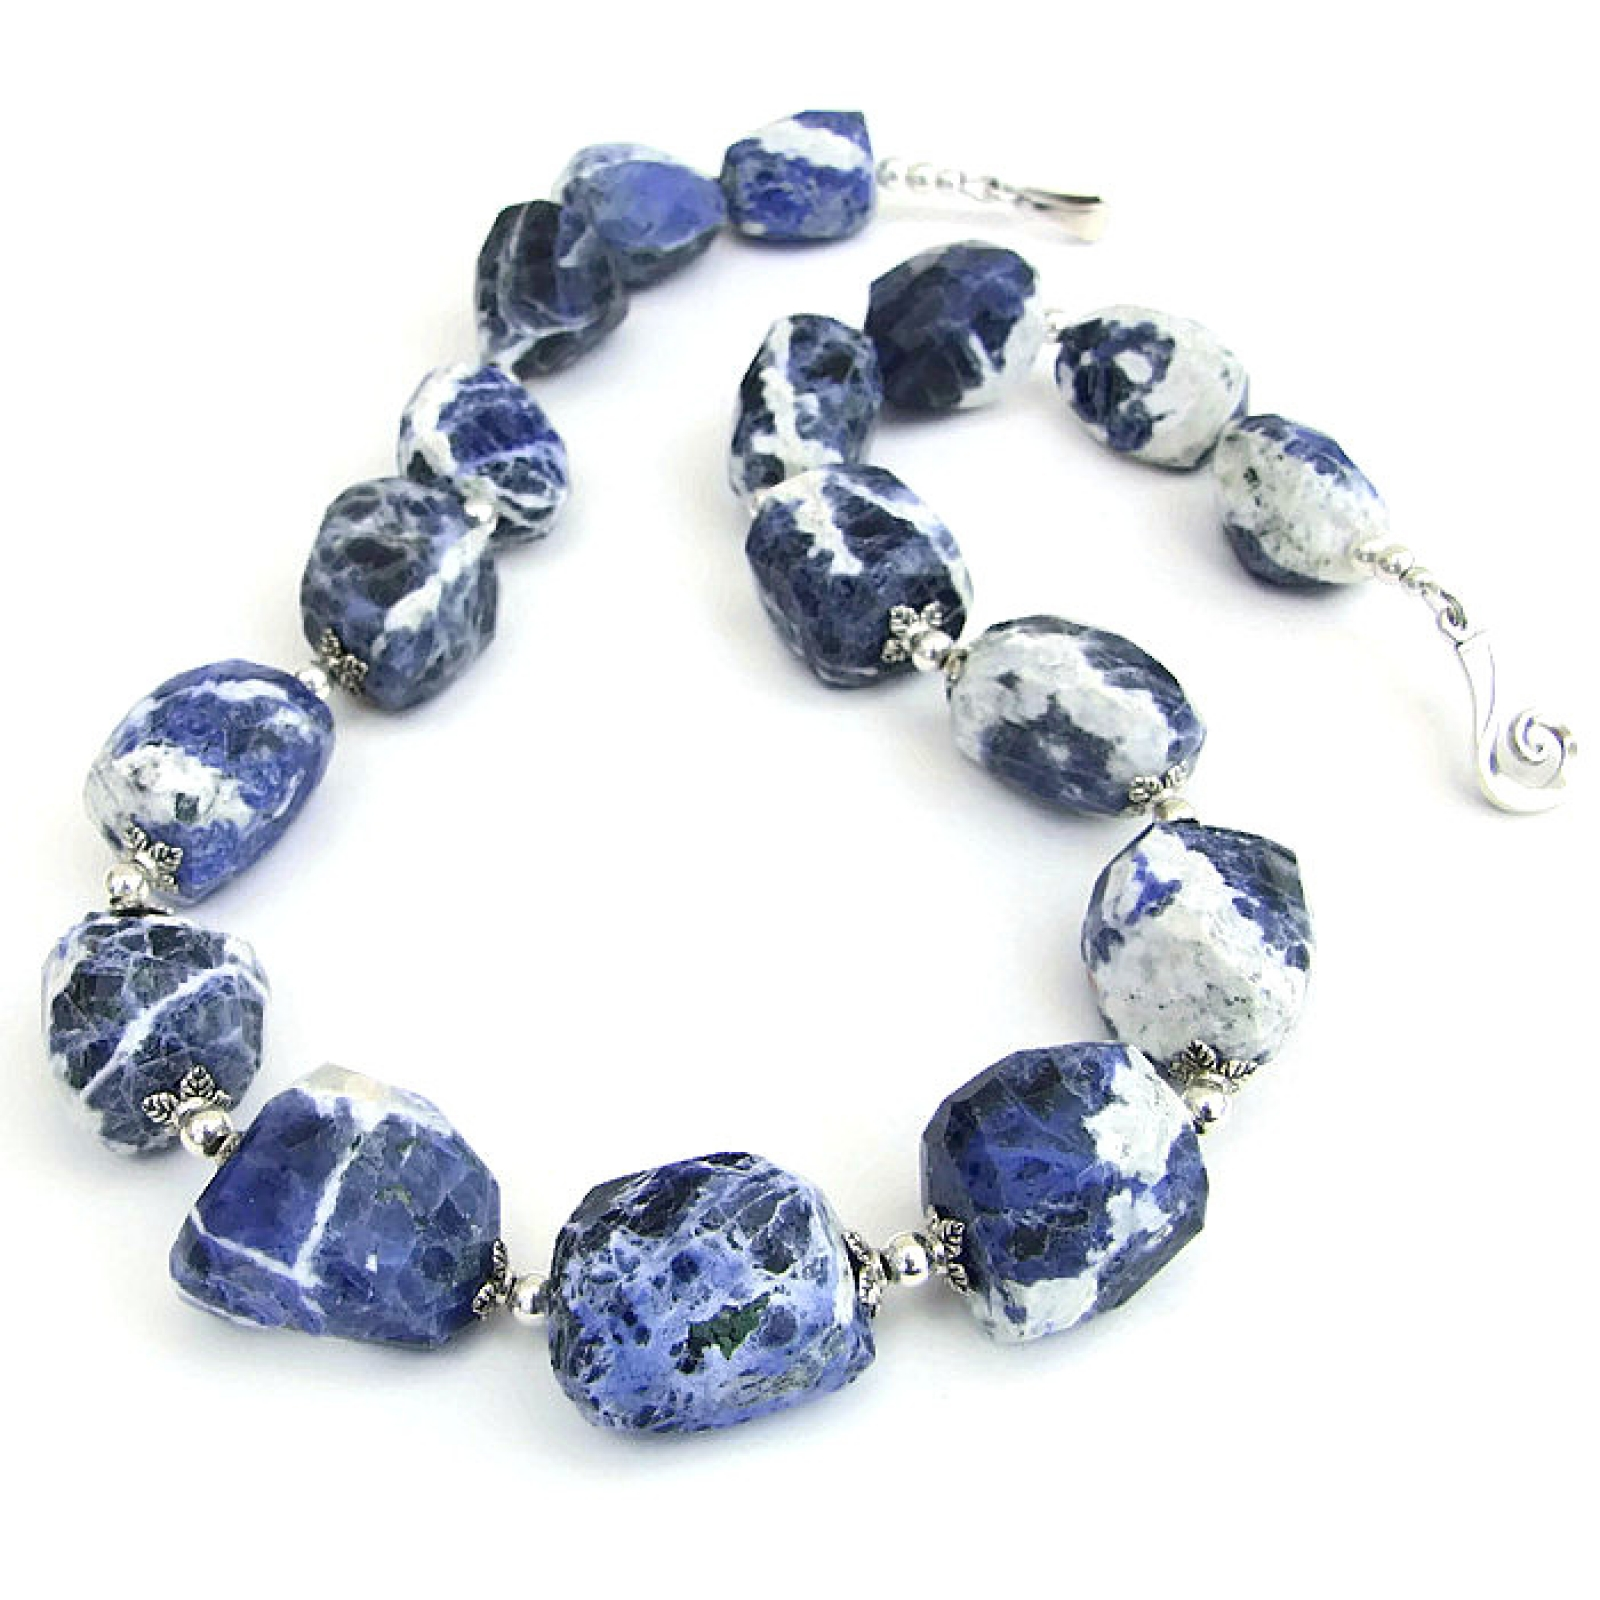 blue sodalite necklace handmade gemstone artisan